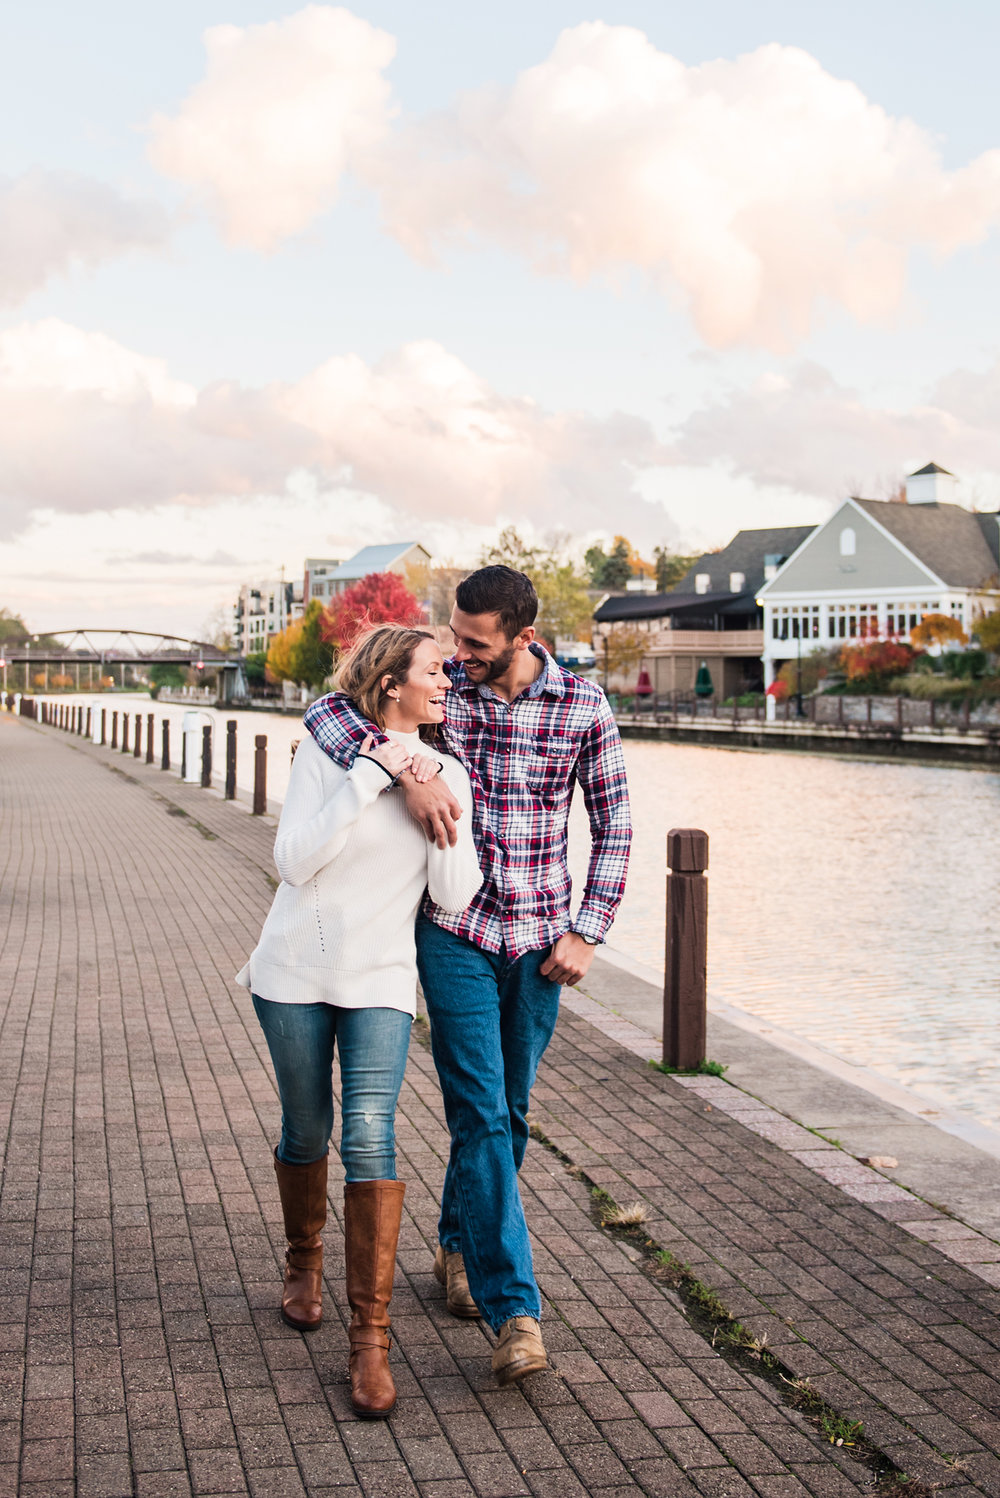 Village_of_Fairport_Rochester_Engagement_Session_JILL_STUDIO_Rochester_NY_Photographer_DSC_8856.jpg